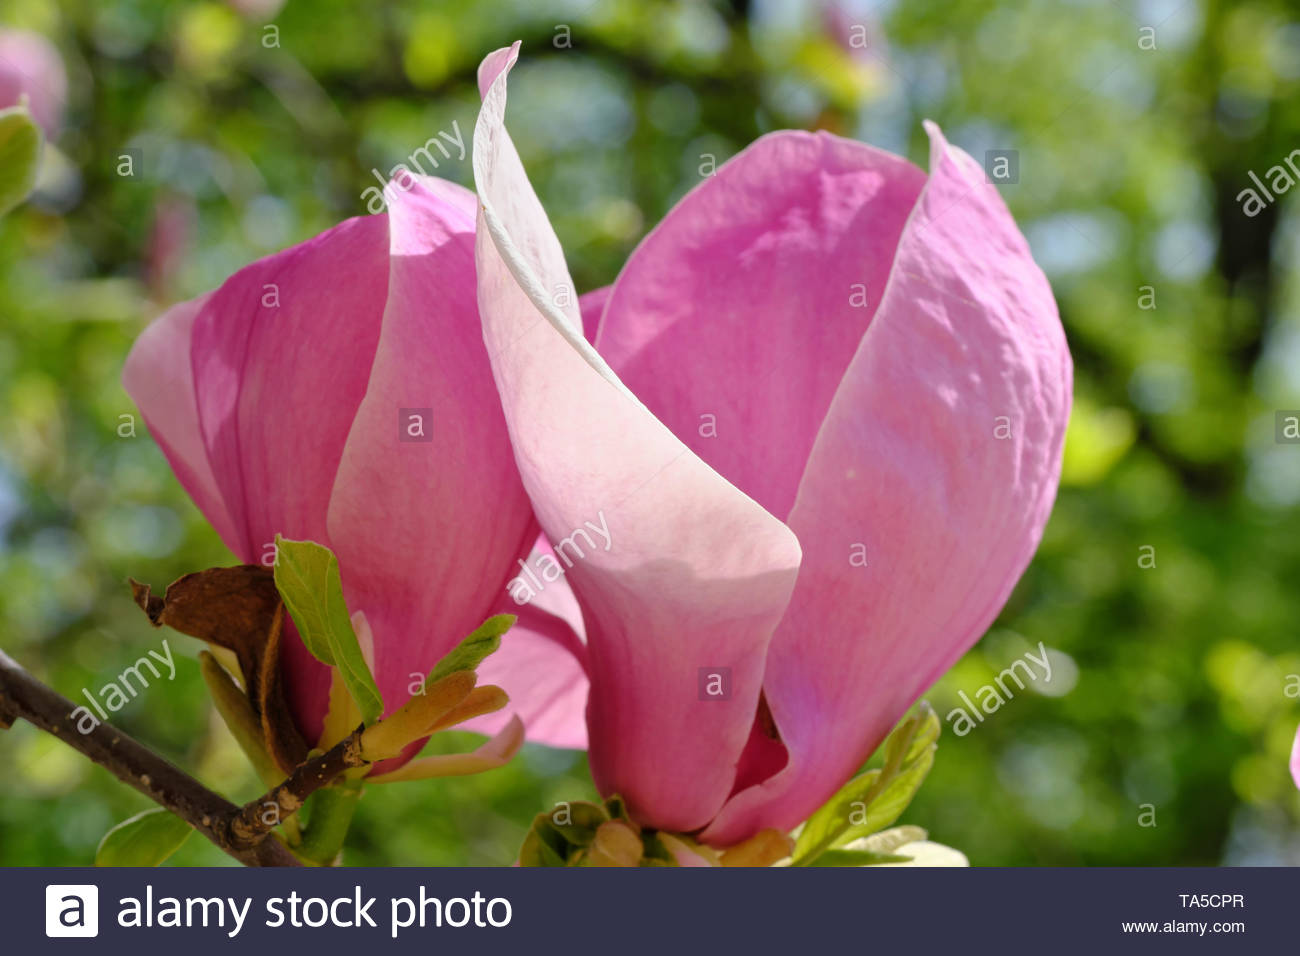 Magnolia blooms on a bright spring day in the botanical garden - Stock Image